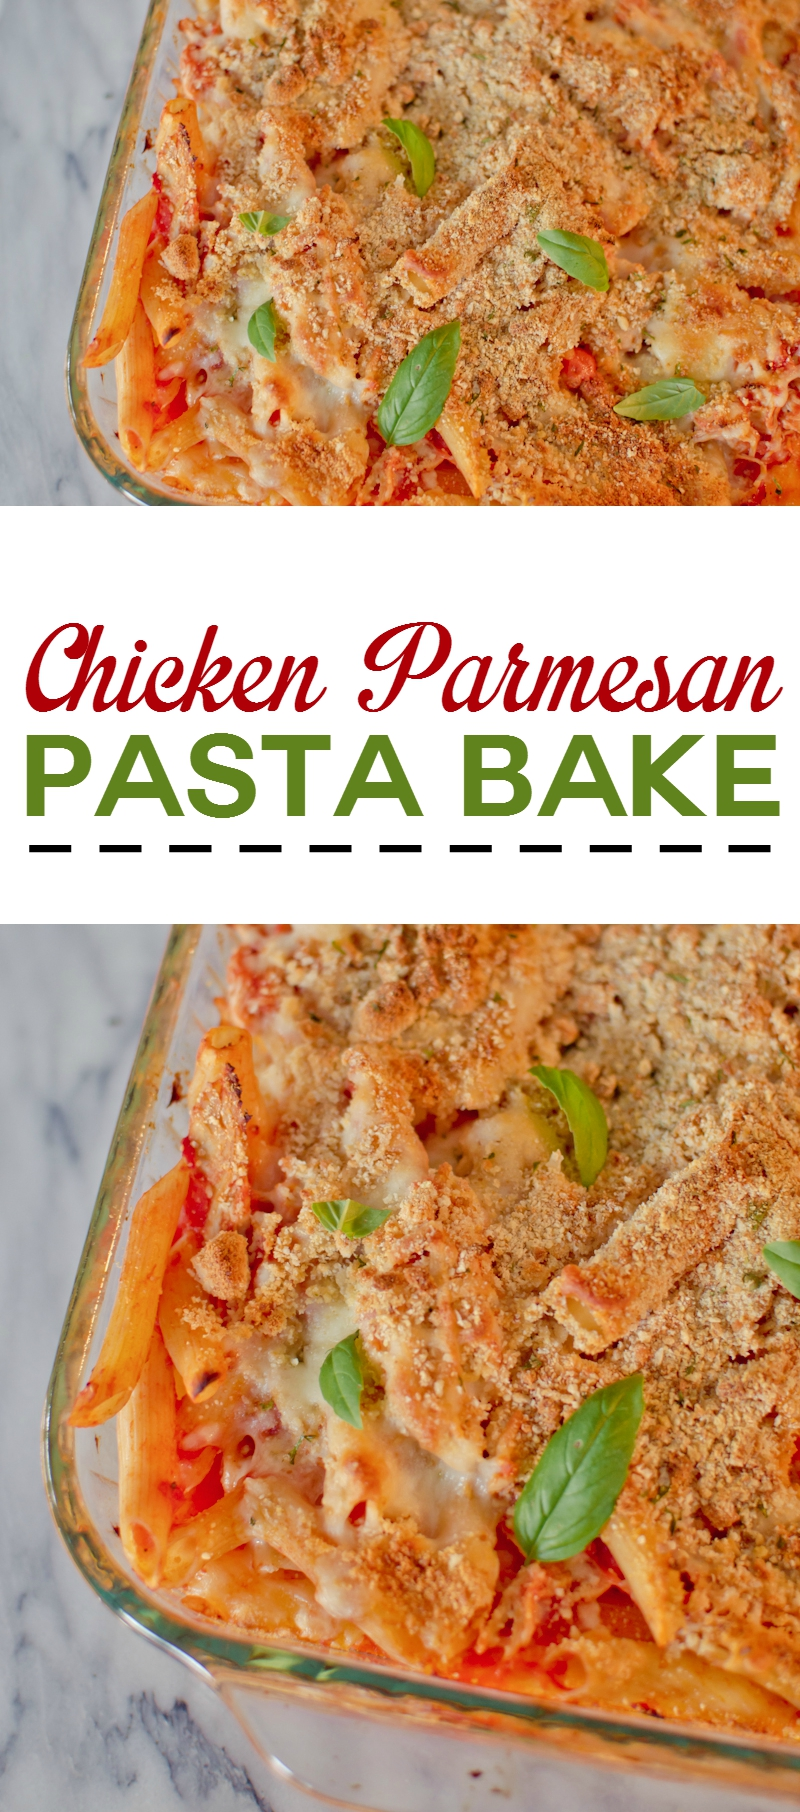 Chicken Parmesan Pasta Bake